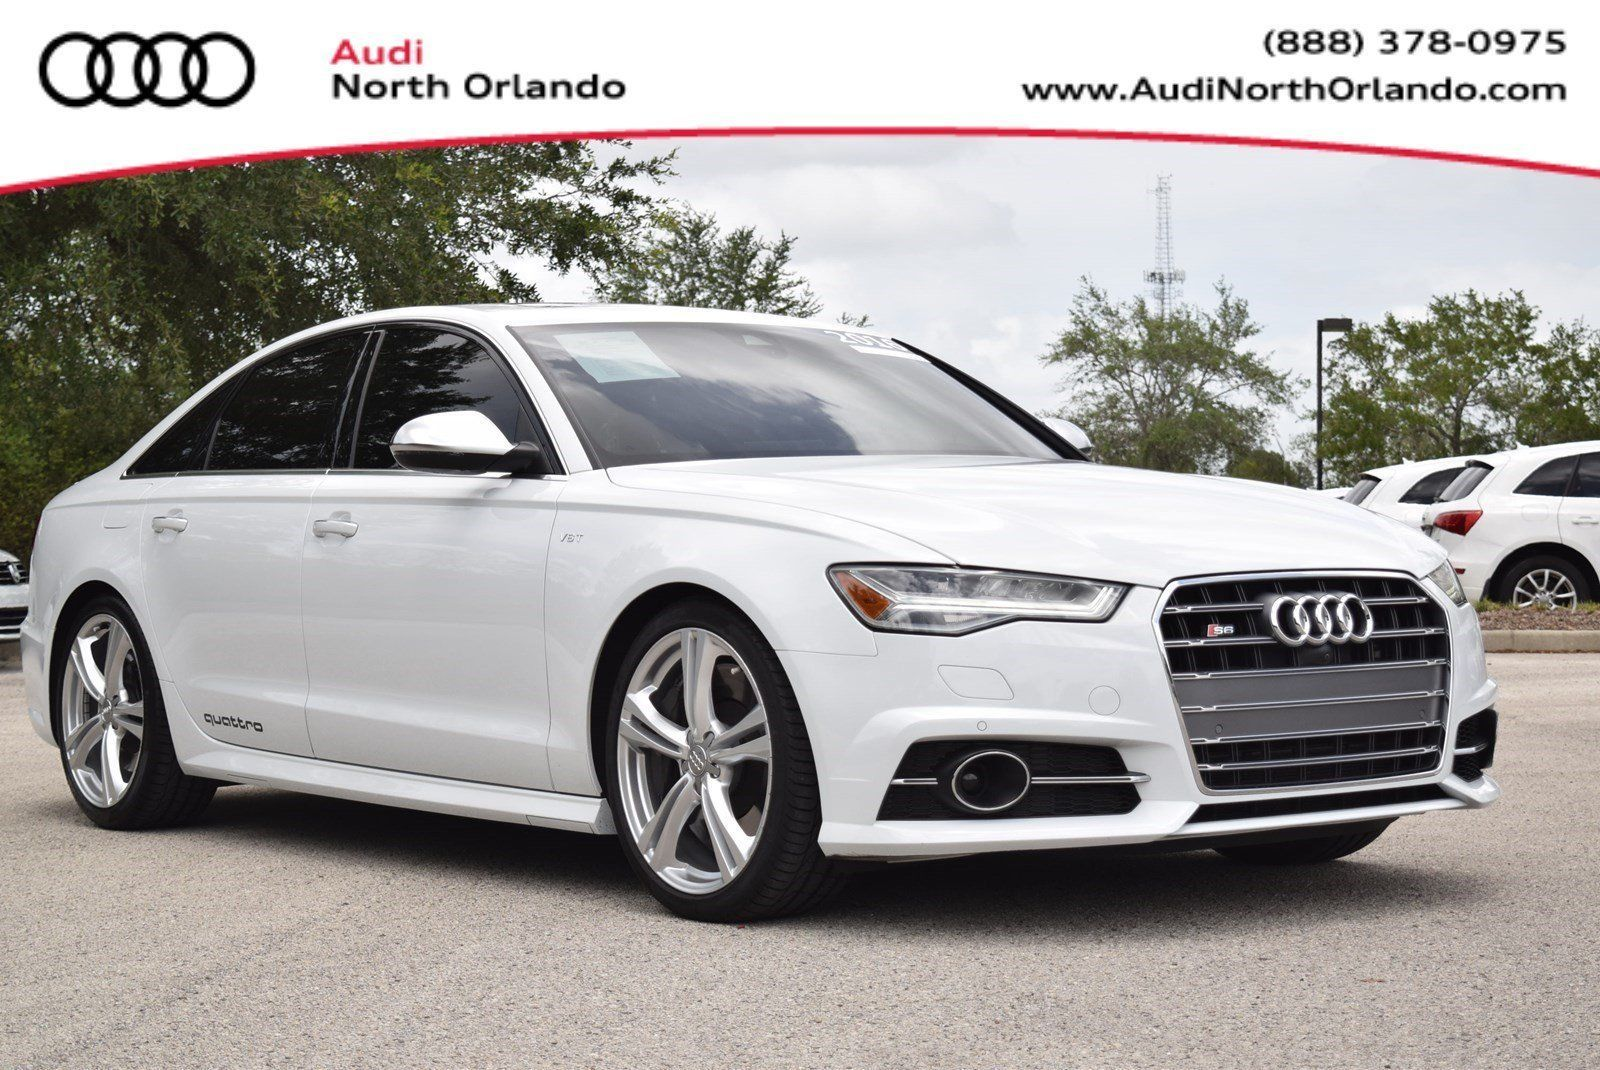 Audi S Prestige Luxury AUTOS Mall Pinterest Audi S - Audi north orlando